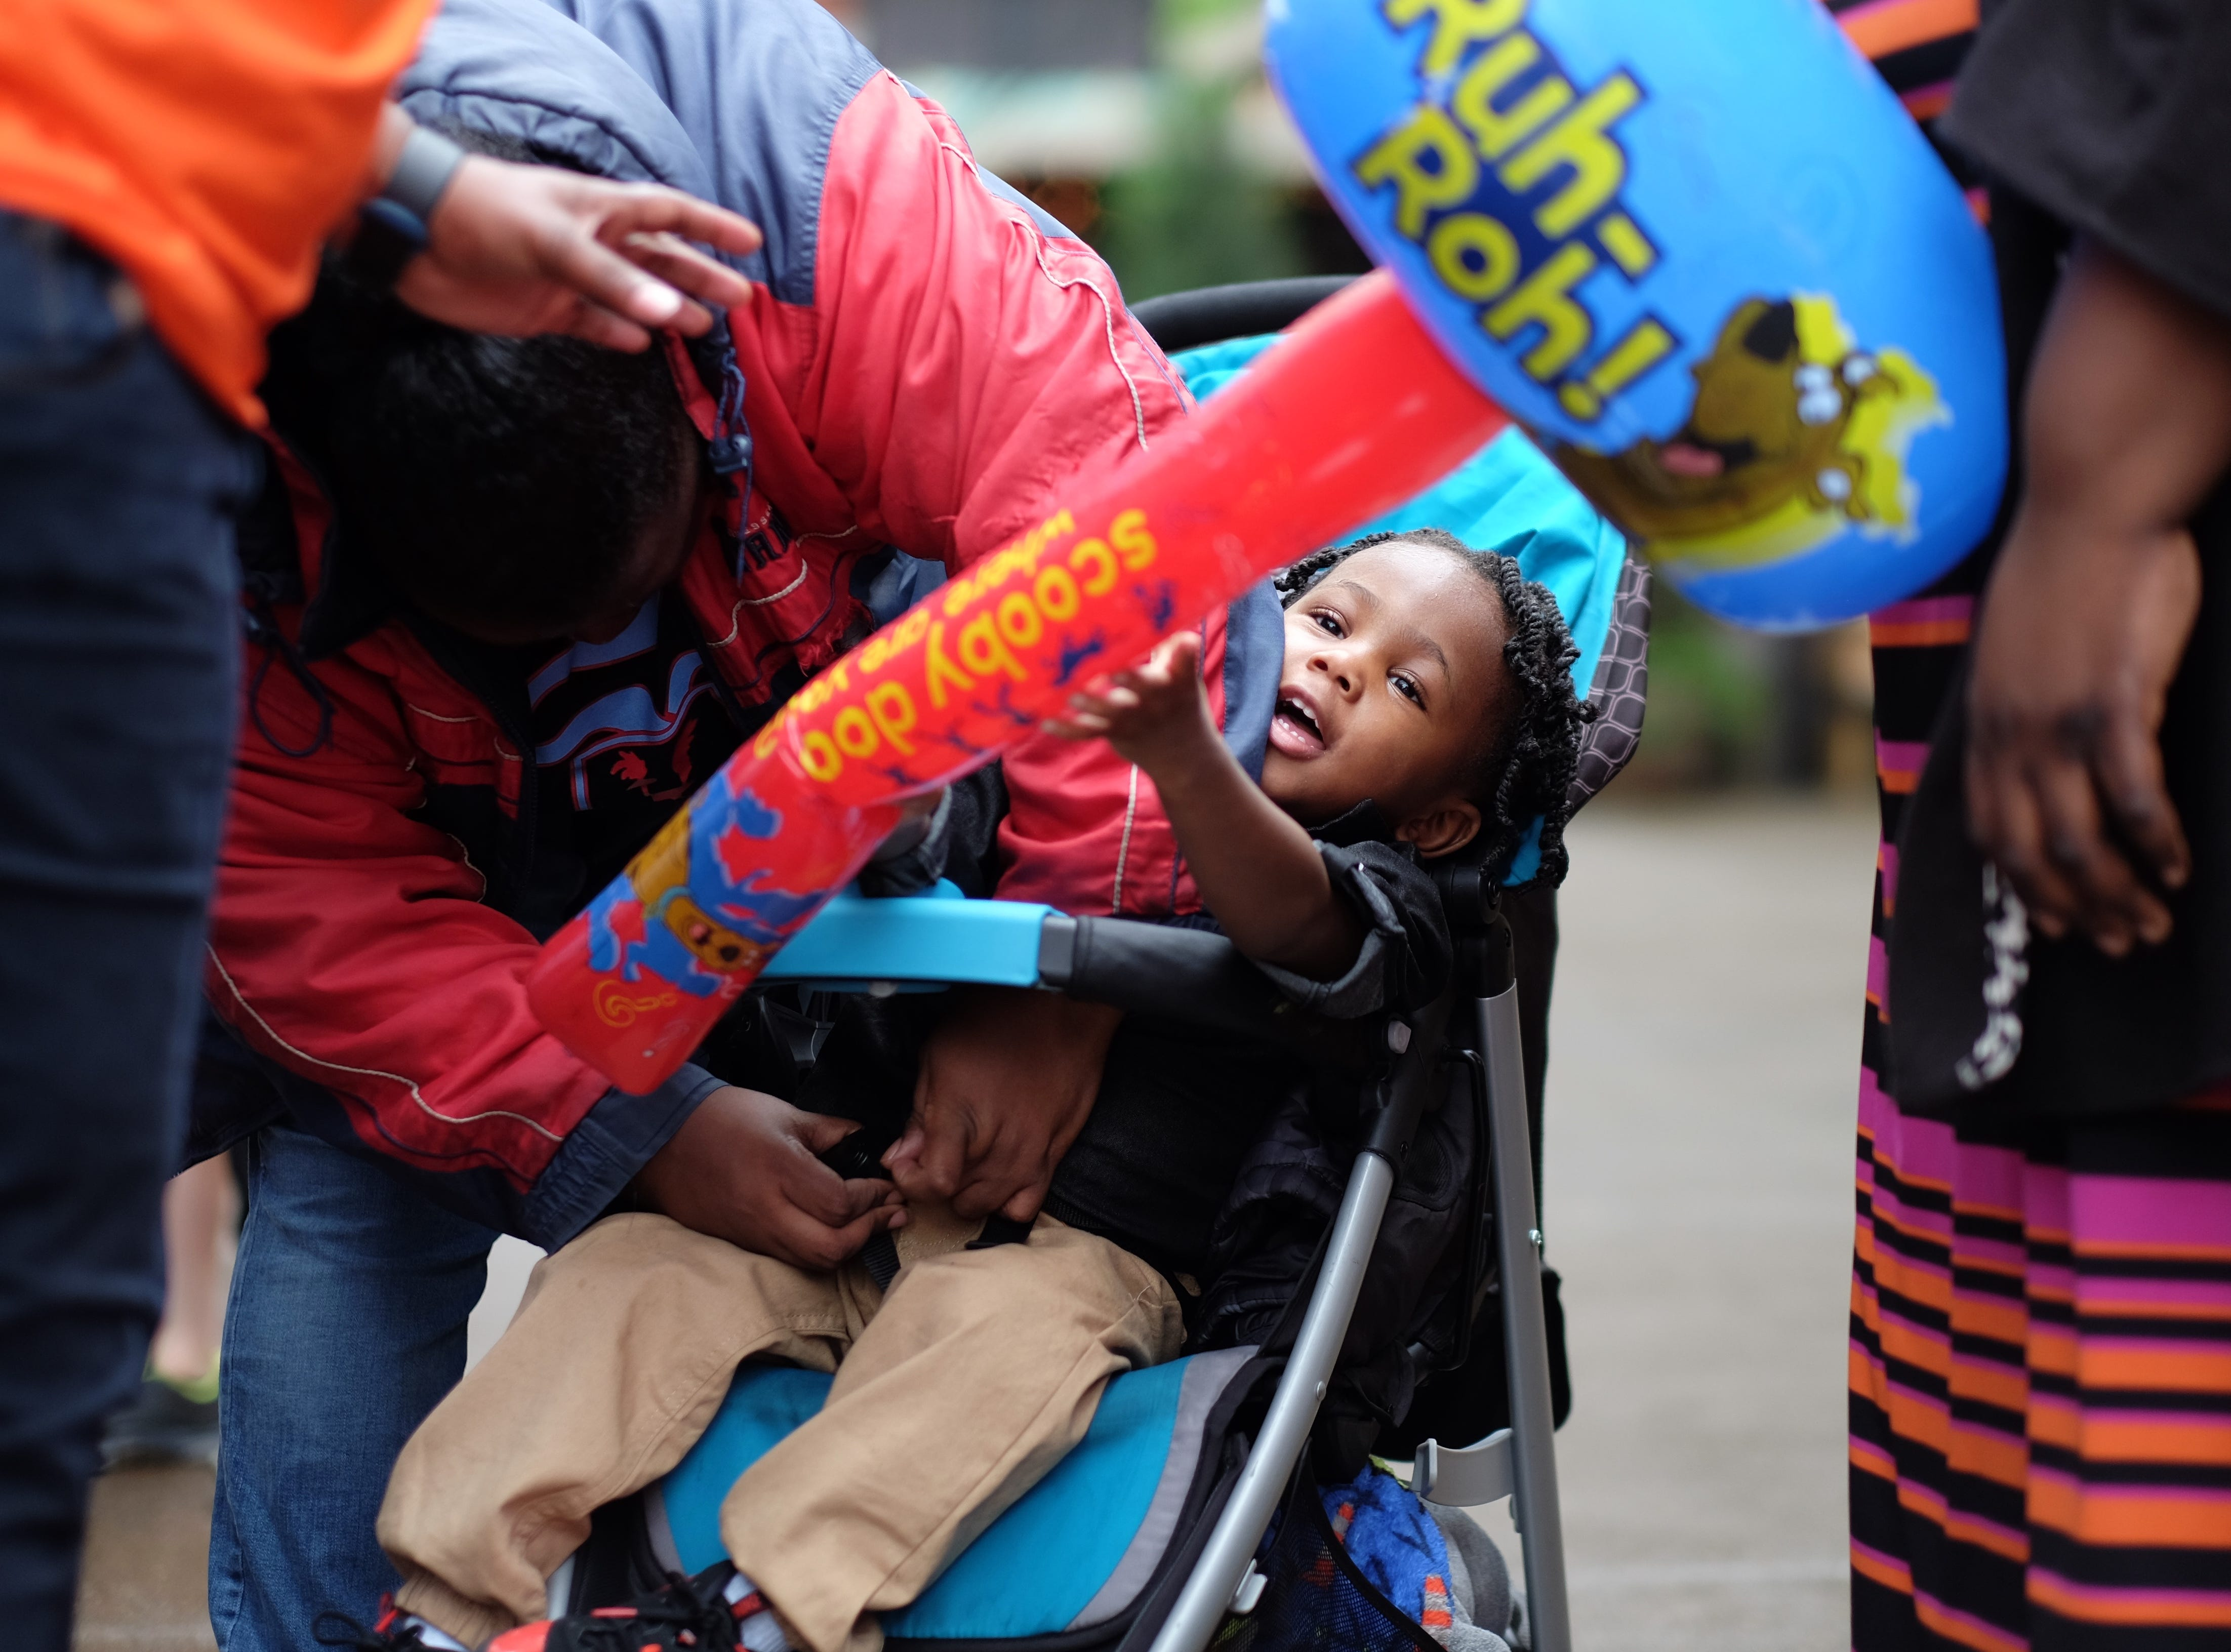 Jakevias Warren, 2, plays with his new inflatable toy during the Rossini Festival in Knoxville on Saturday, April 13, 2019. (Shawn Millsaps/Special to News Sentinel)